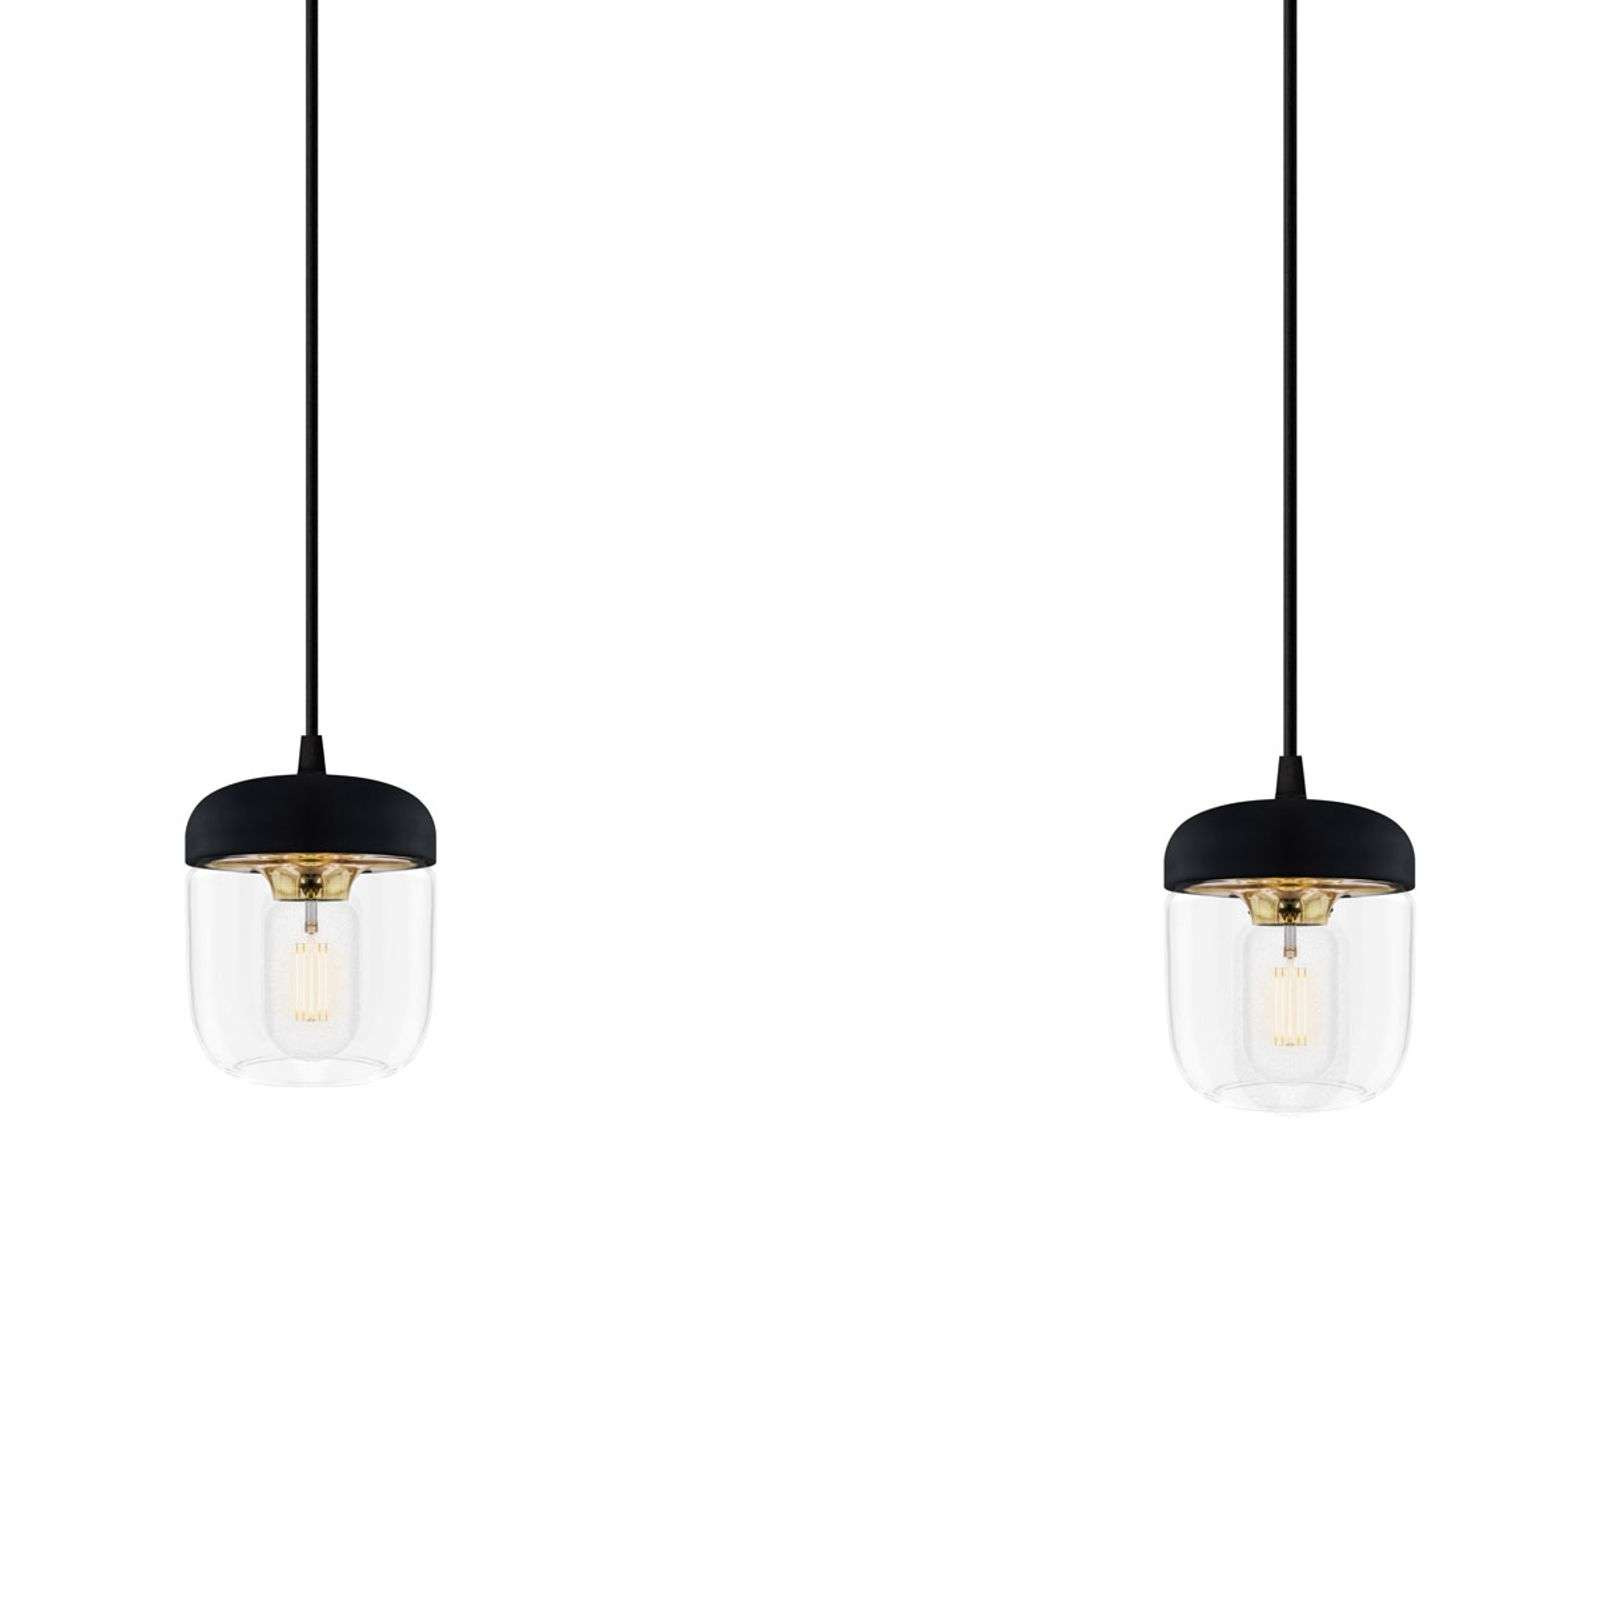 Suspension design Acorn en noir et laiton